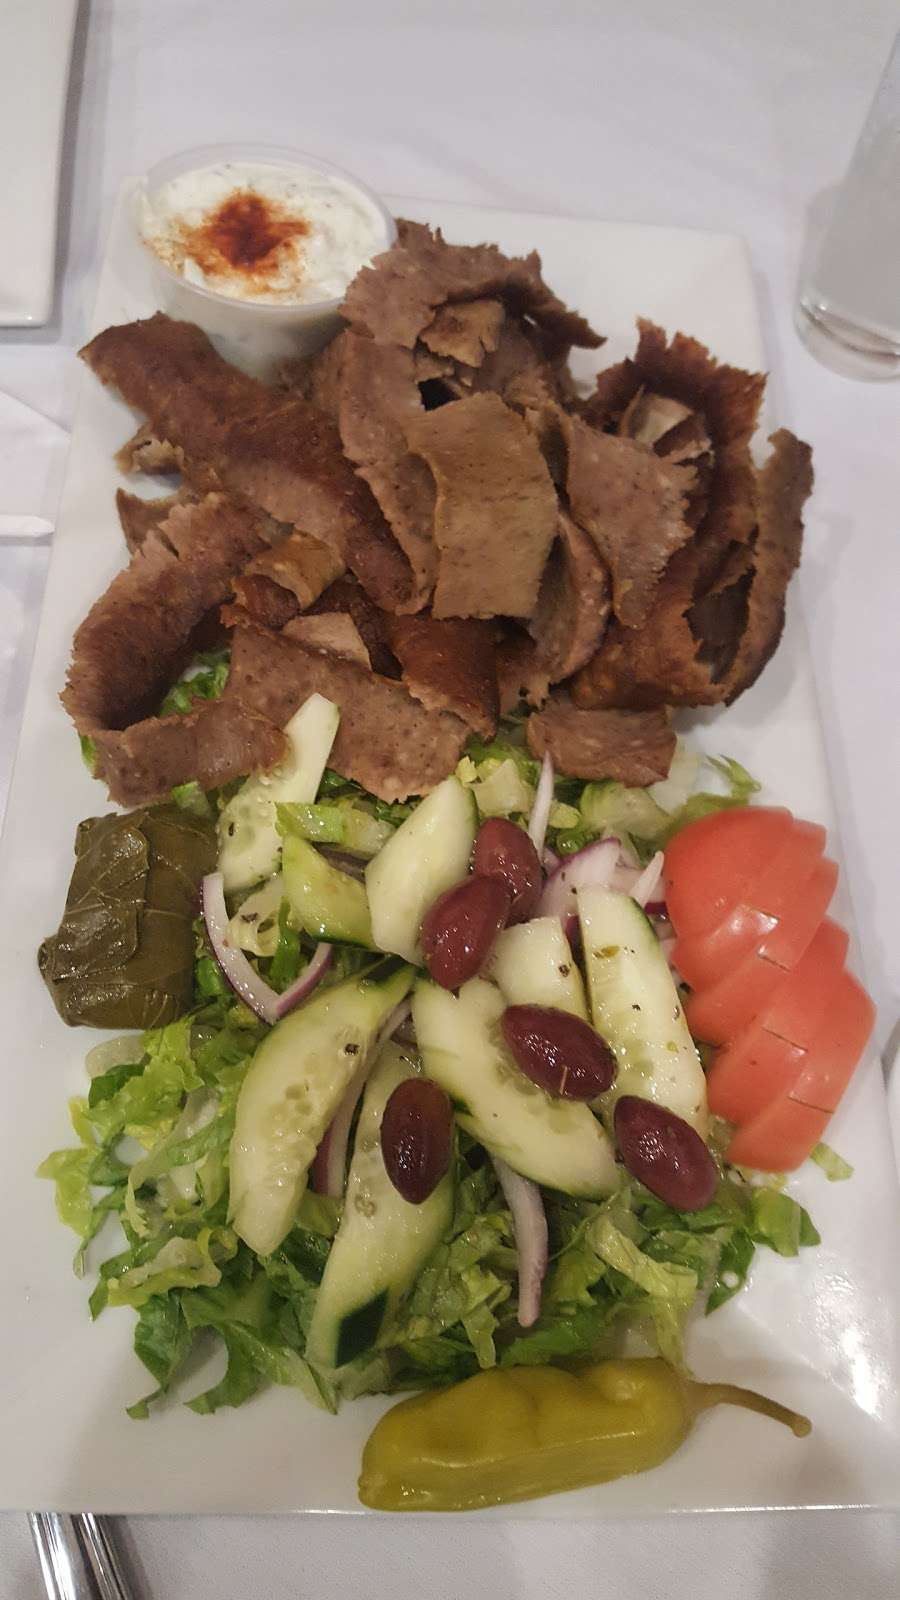 Its Greek To Me - restaurant  | Photo 5 of 10 | Address: 352 Anderson Ave B, Cliffside Park, NJ 07010, USA | Phone: (201) 945-5447